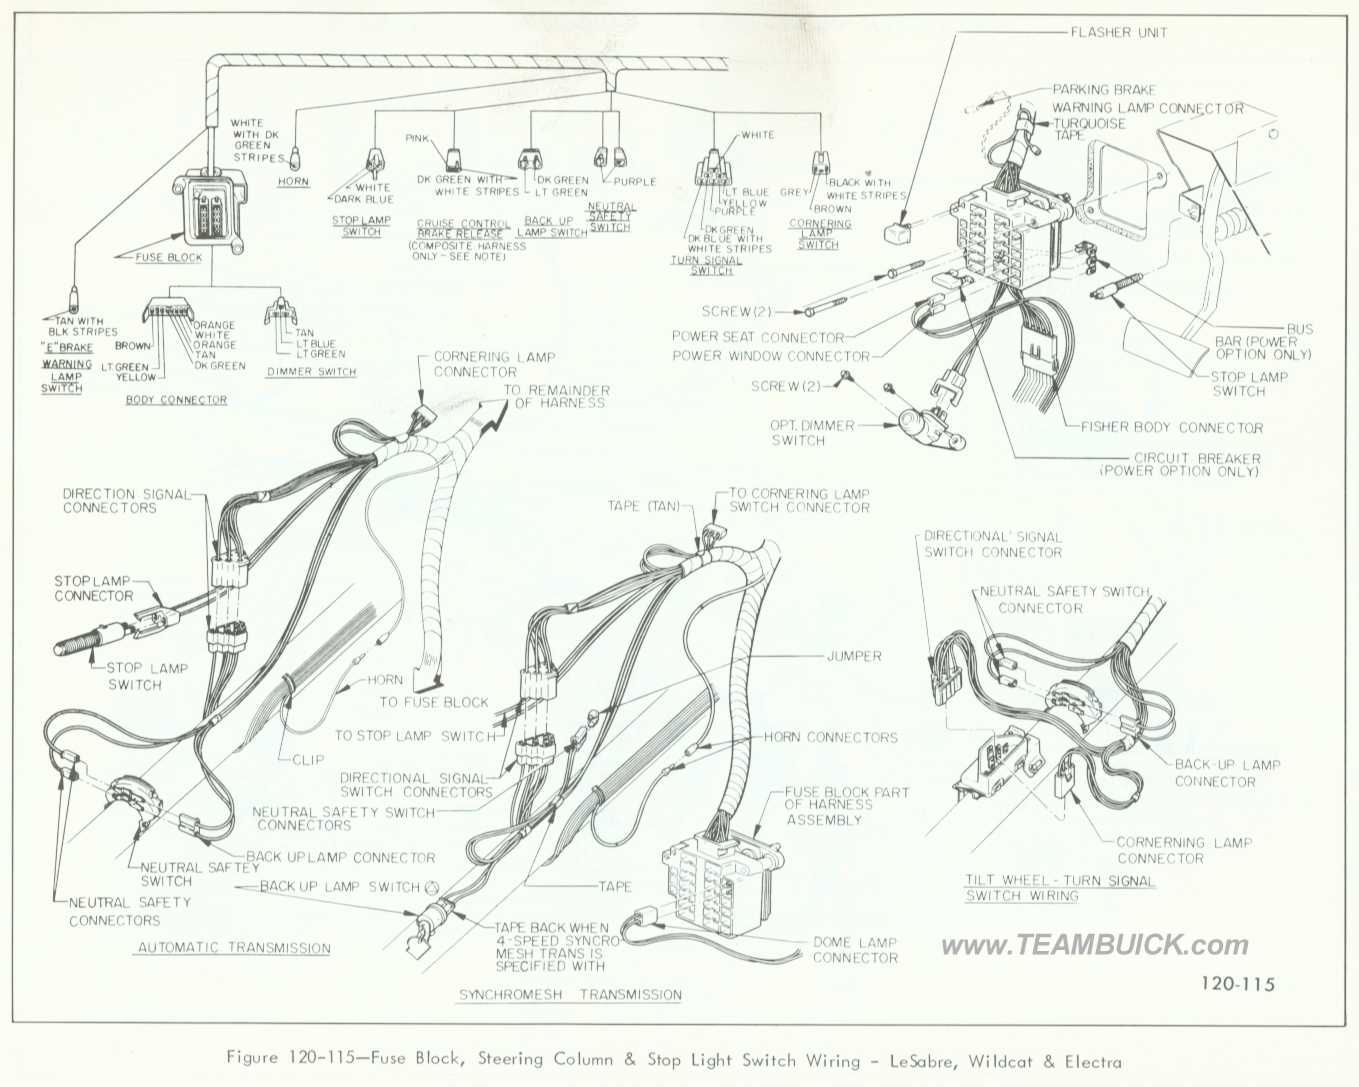 Steering Column likewise Chevroletindex in addition Chevy Horn Ring Installation Kit 1957 Bel Air   210 besides 66 Mustang Fuse Box Diagram as well Catalog3. on 1964 chevelle wiring diagram